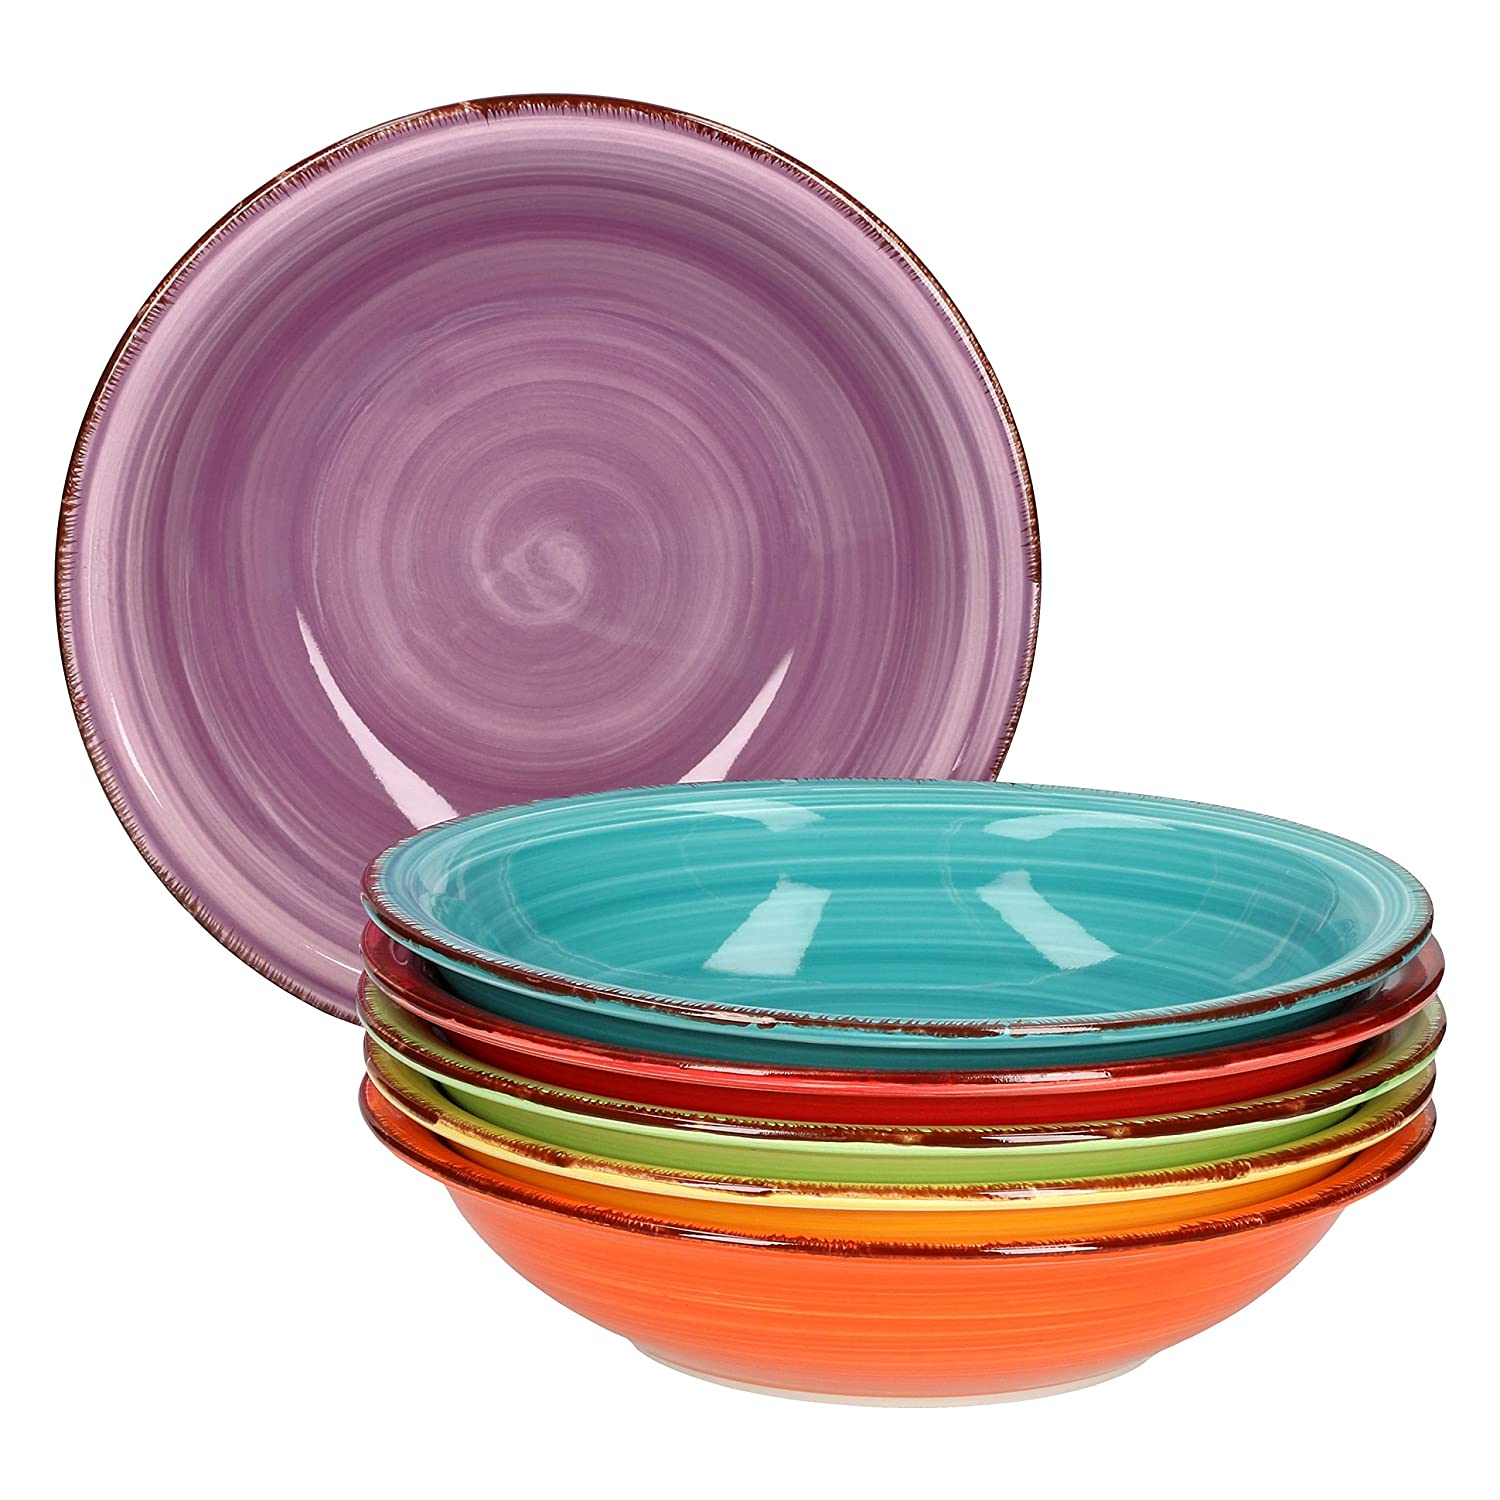 MamboCat 6-TLG Lot de Assiettes Creuses en Porcelaine Multicolore 750 ML